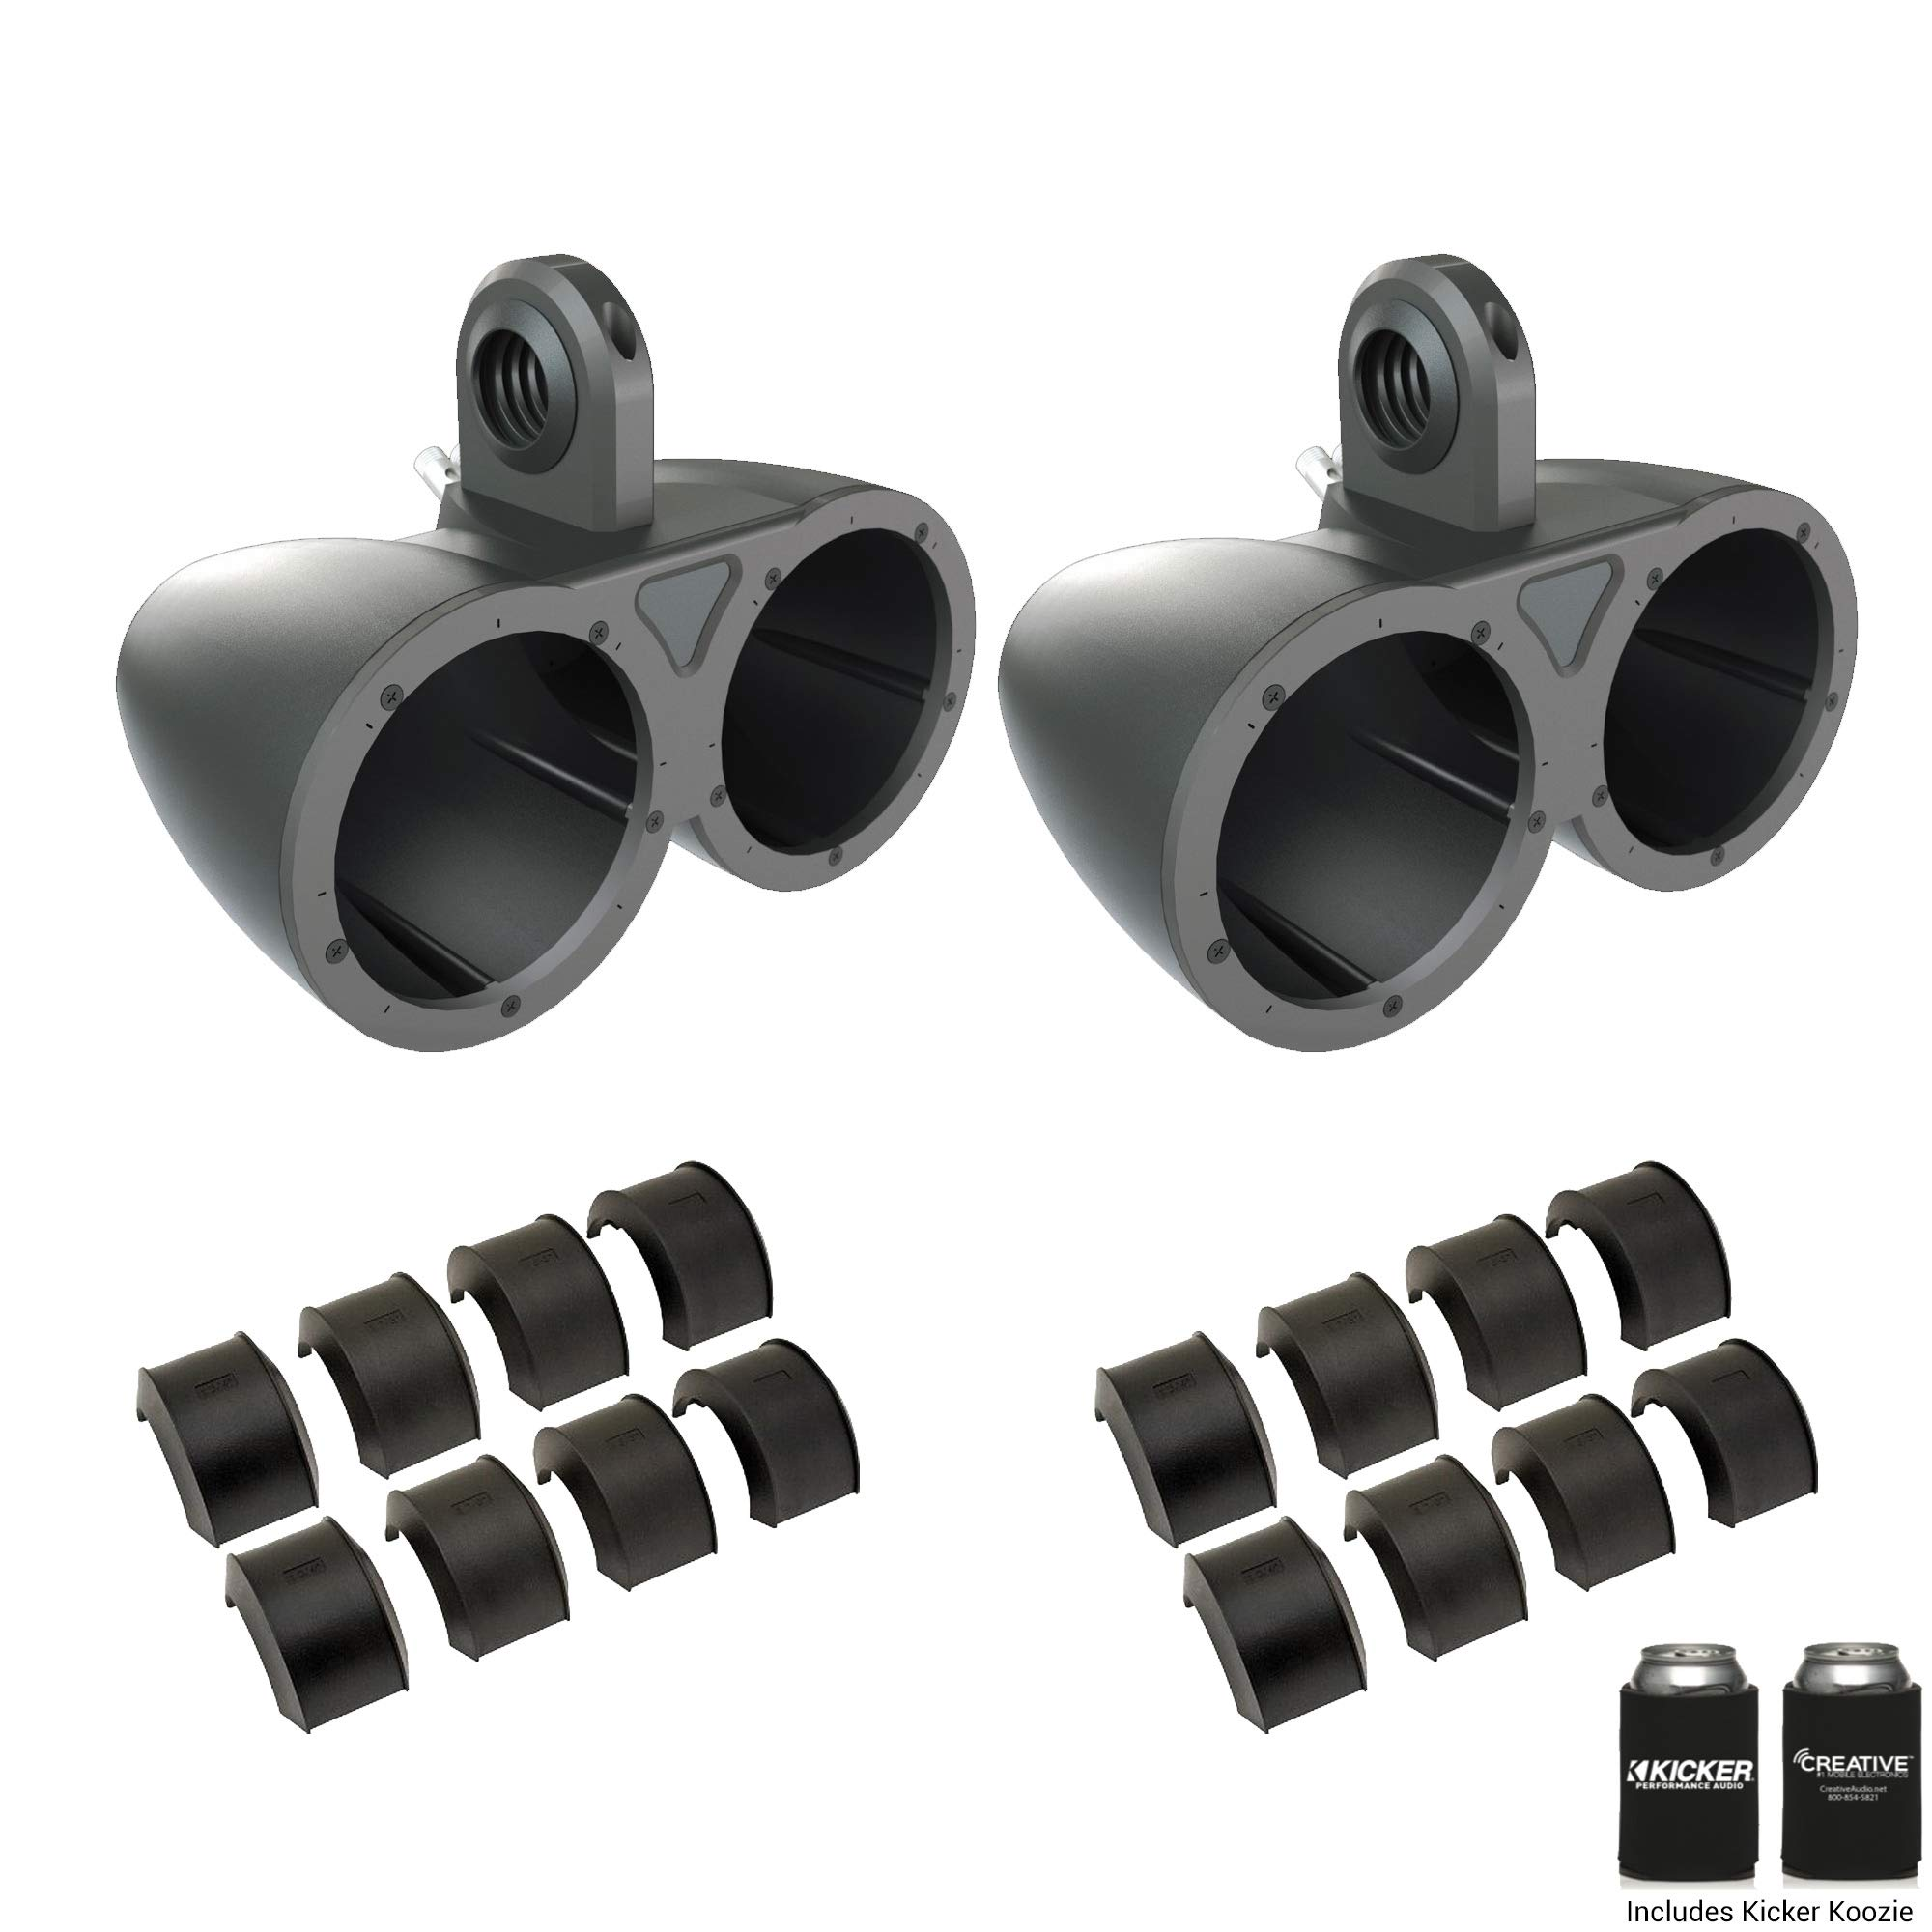 Kicker KMTED Dual 6.5'' Empty Wake Tower/Roll Bar Enclosures with KMTAP Adapter Pack for UTVs